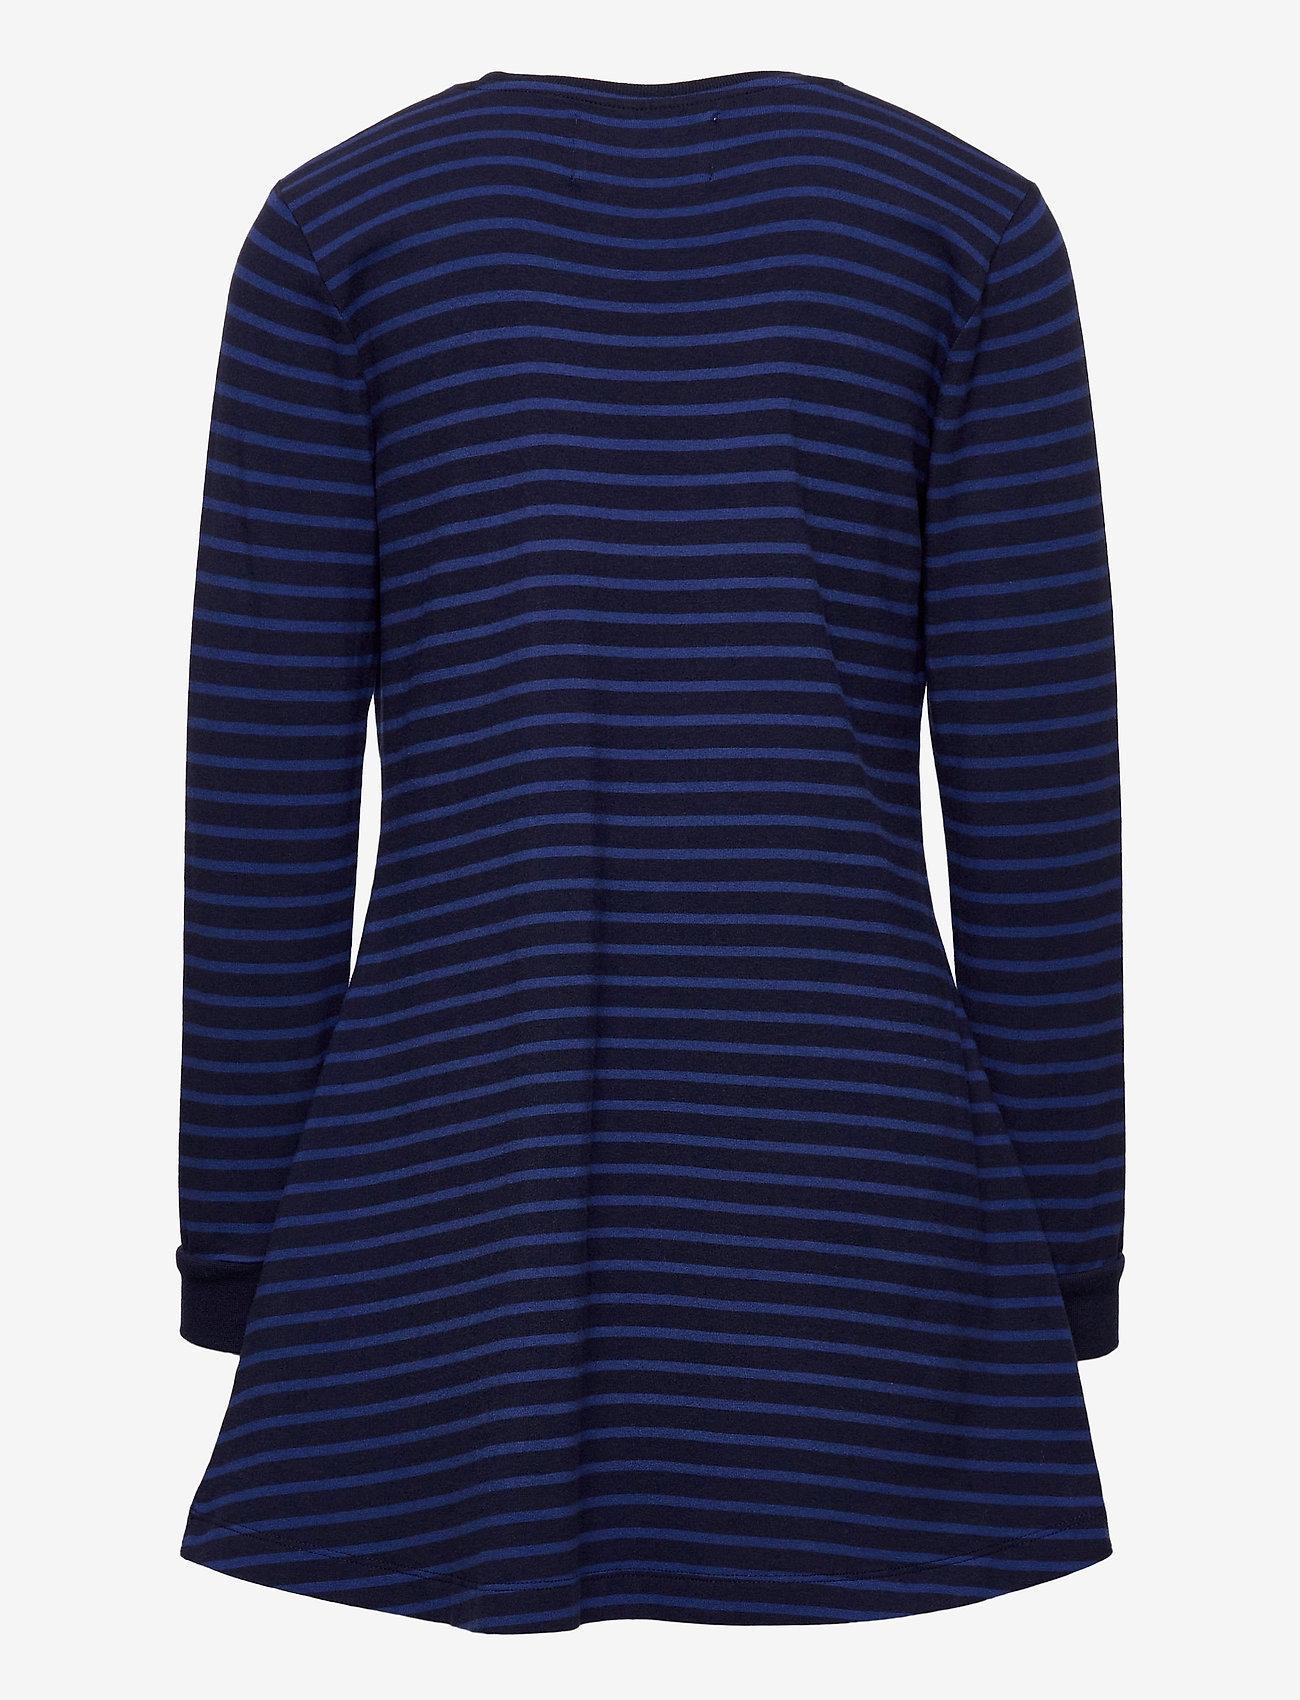 Wood Wood - Aya dress - robes - navy/blue stripes - 1